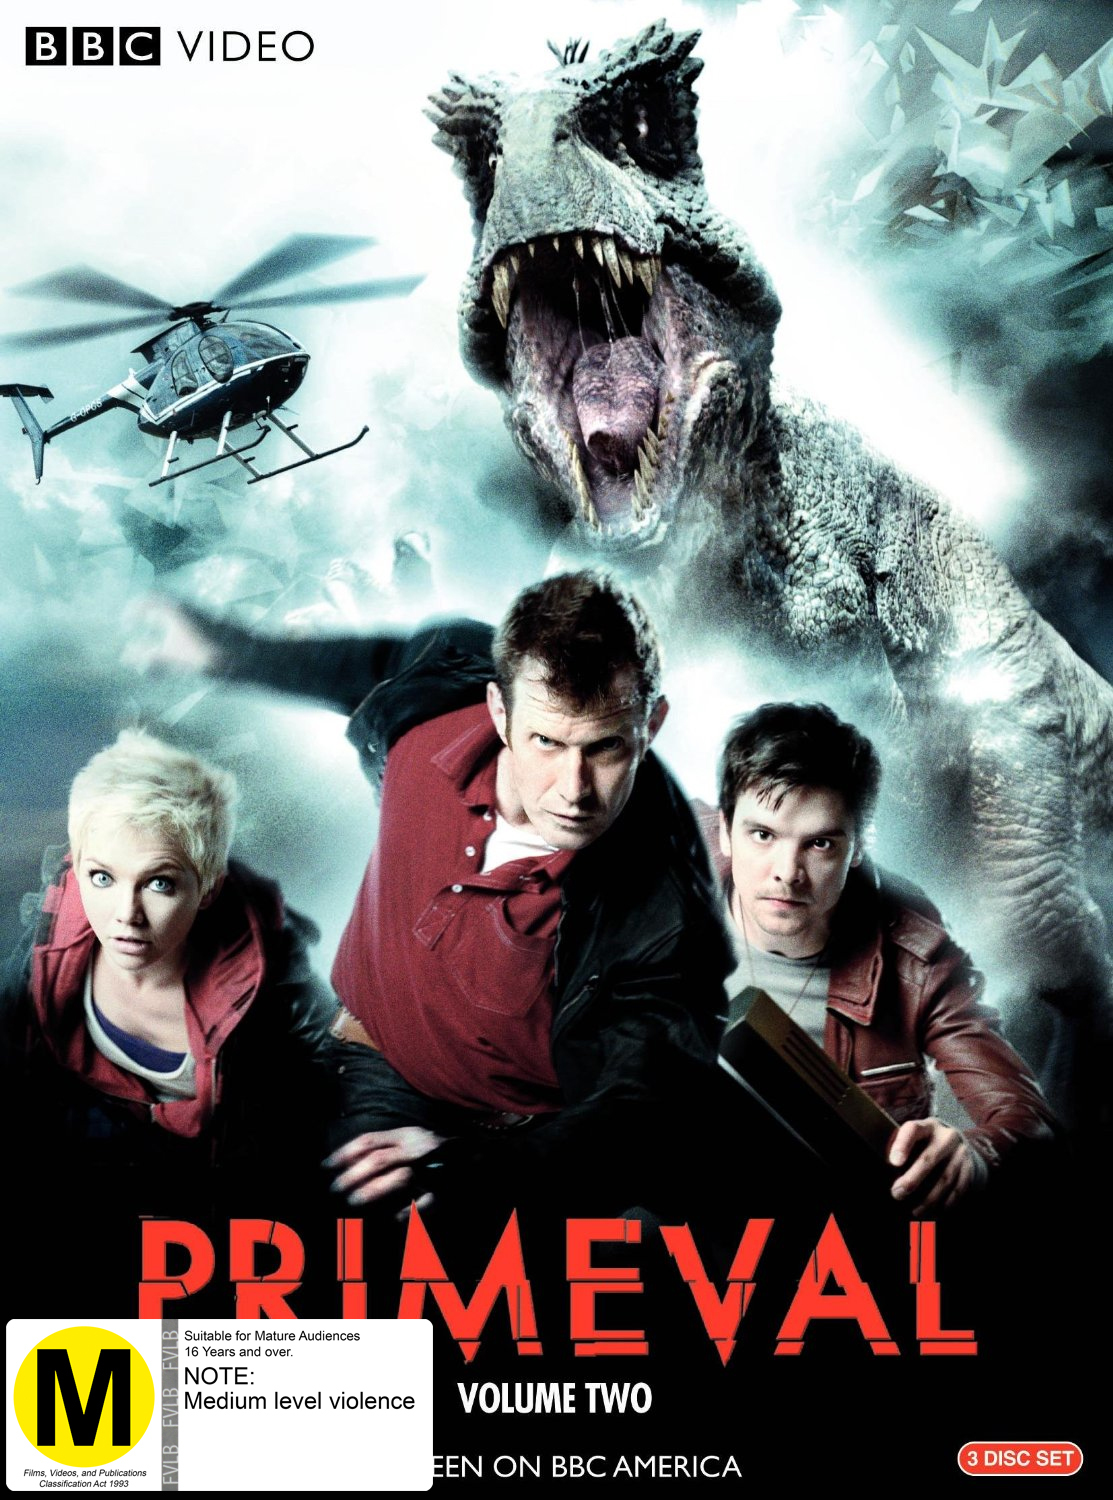 Primeval - The Complete Series 2 (2 Disc Set) on DVD image